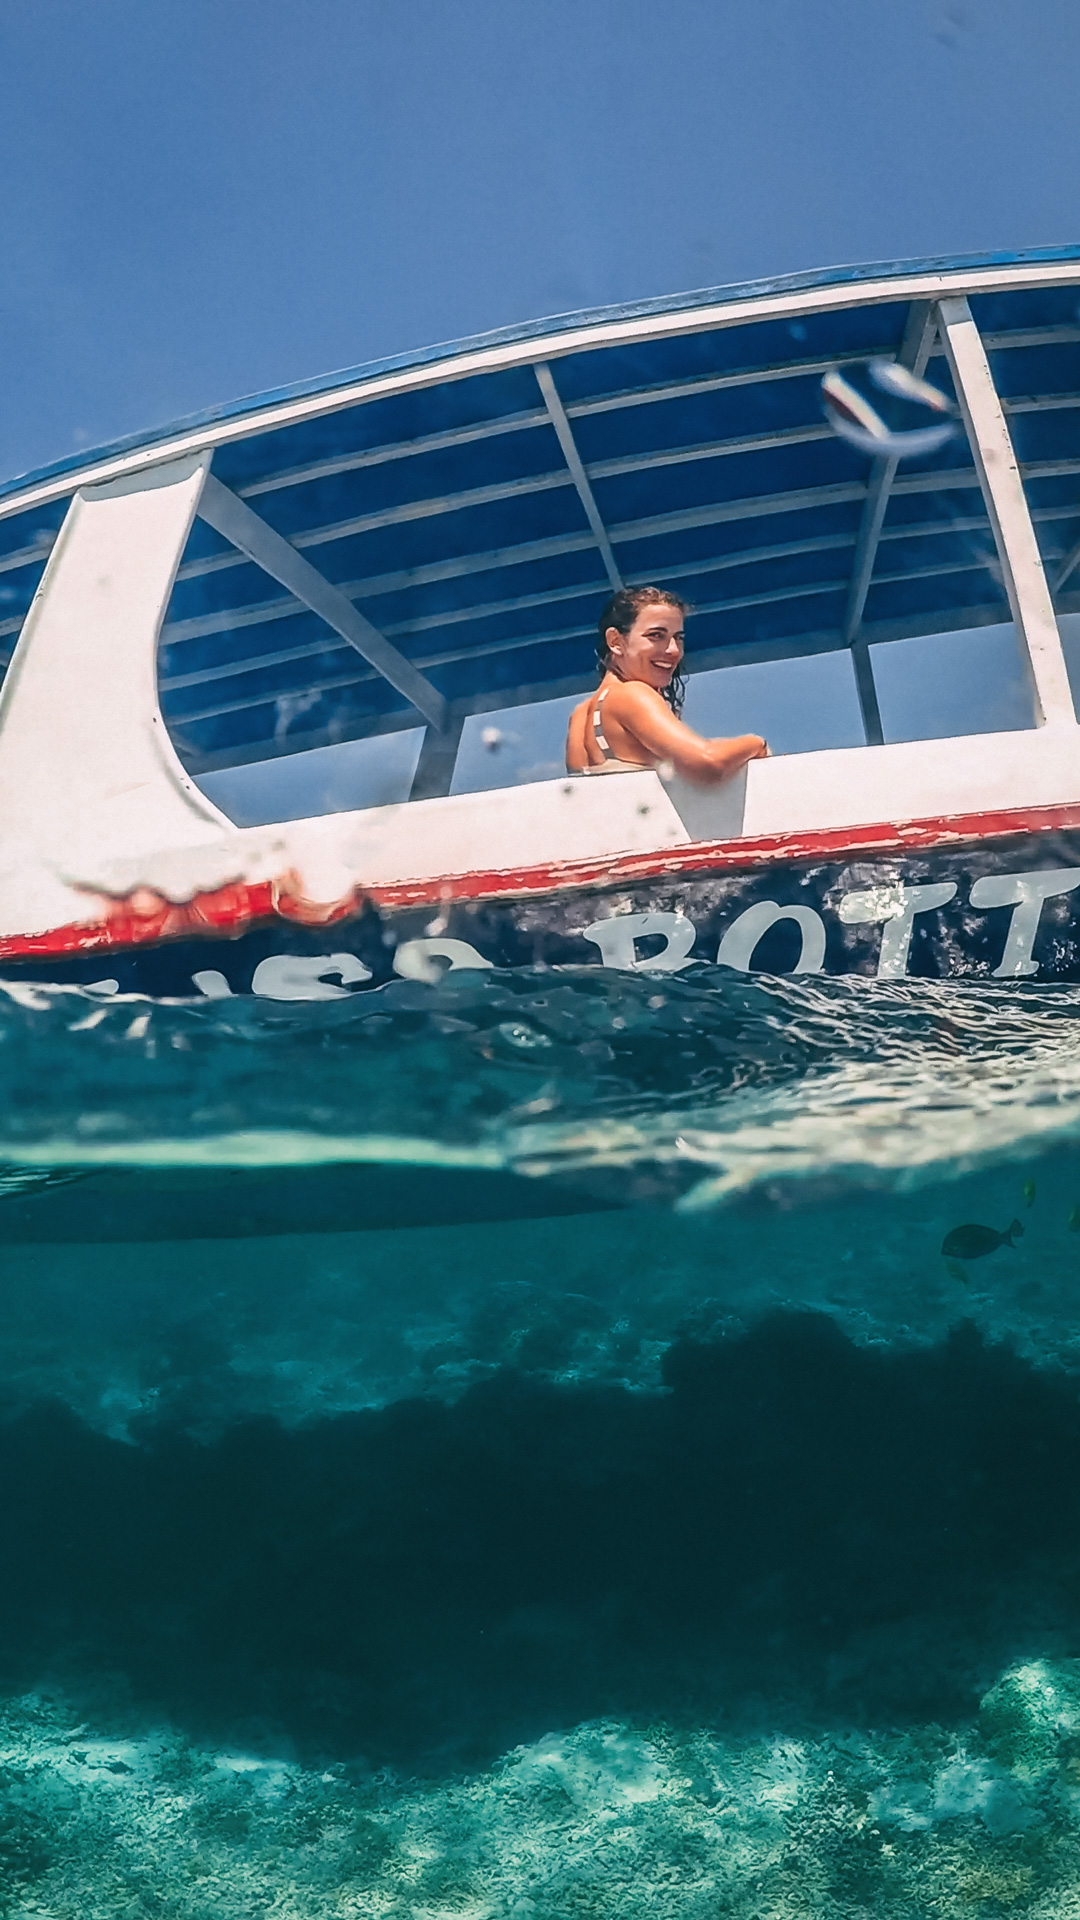 Glassbottom Boat, Snorkeling Trip, Gili Islands   Can I travel to the Gili Islands after the earthquakes?